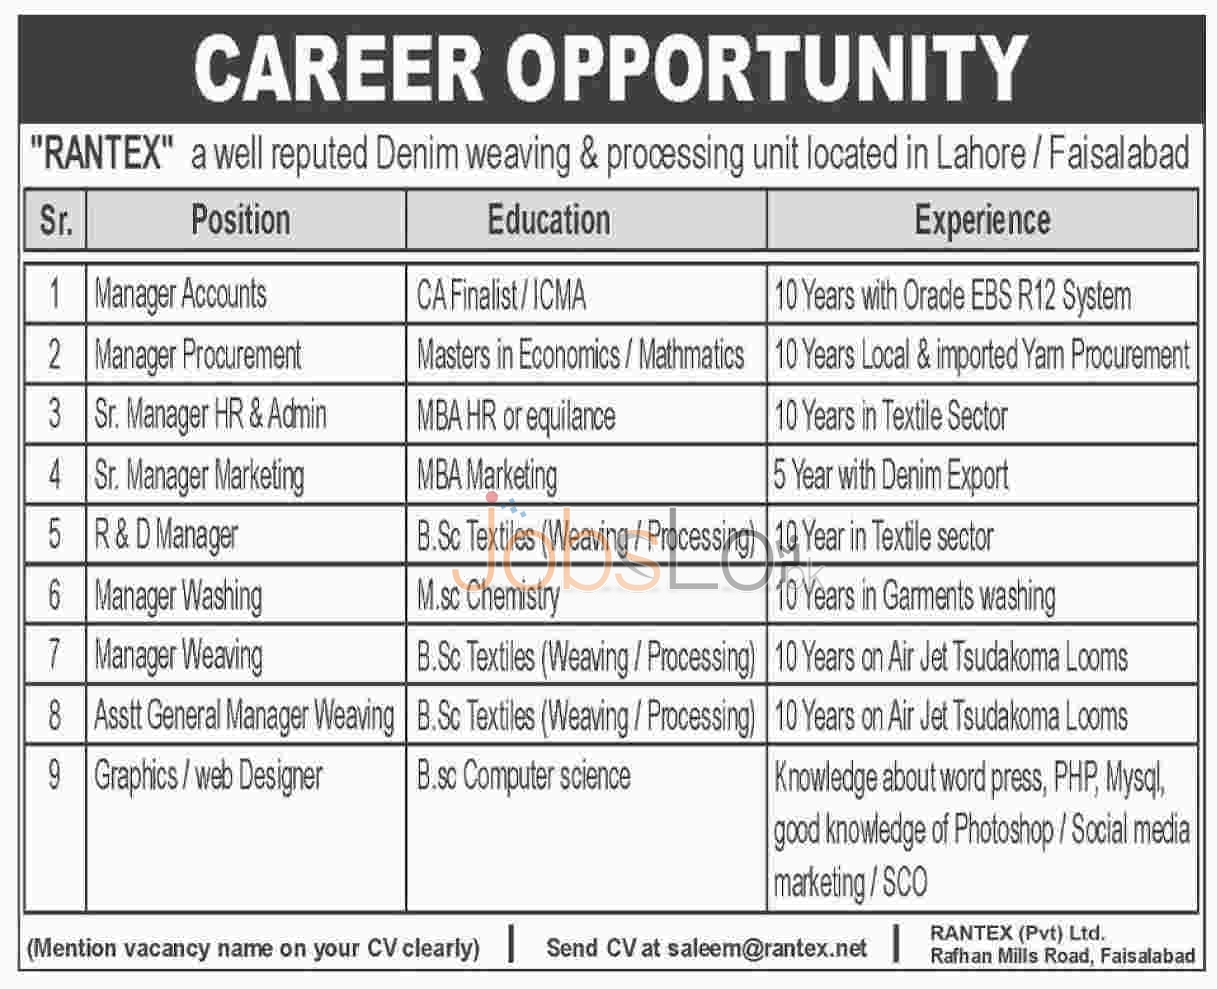 Recruitment Offers in RANTEX Denim Weaving and Processing Unit Offers in Karachi and Faisalaba 2016d